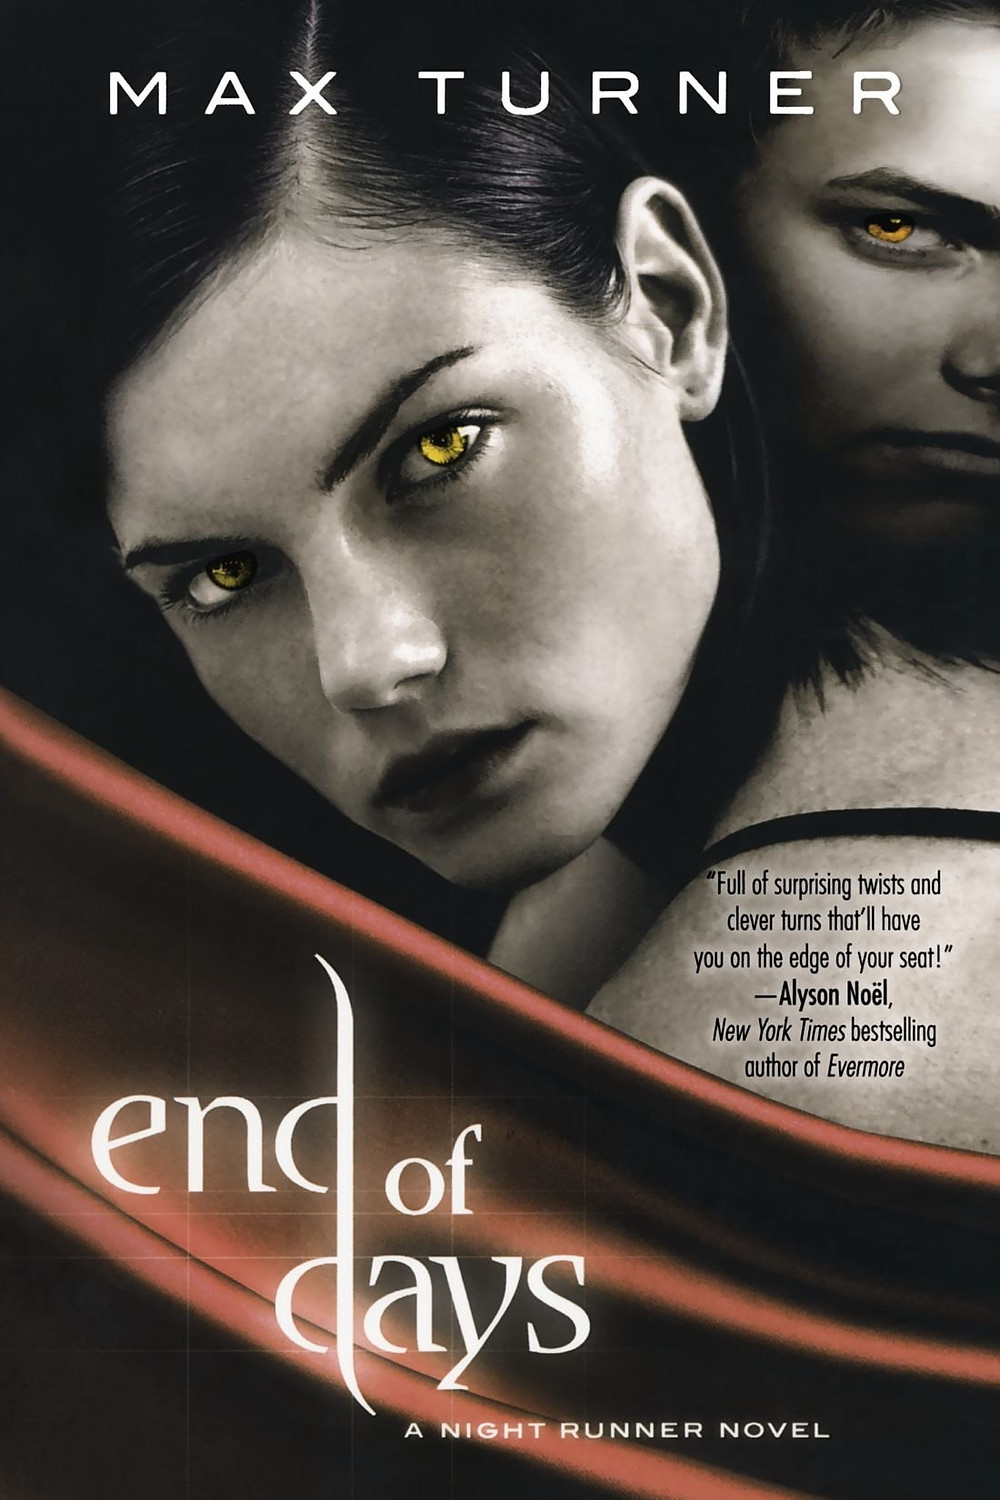 End of Days by Max Turner